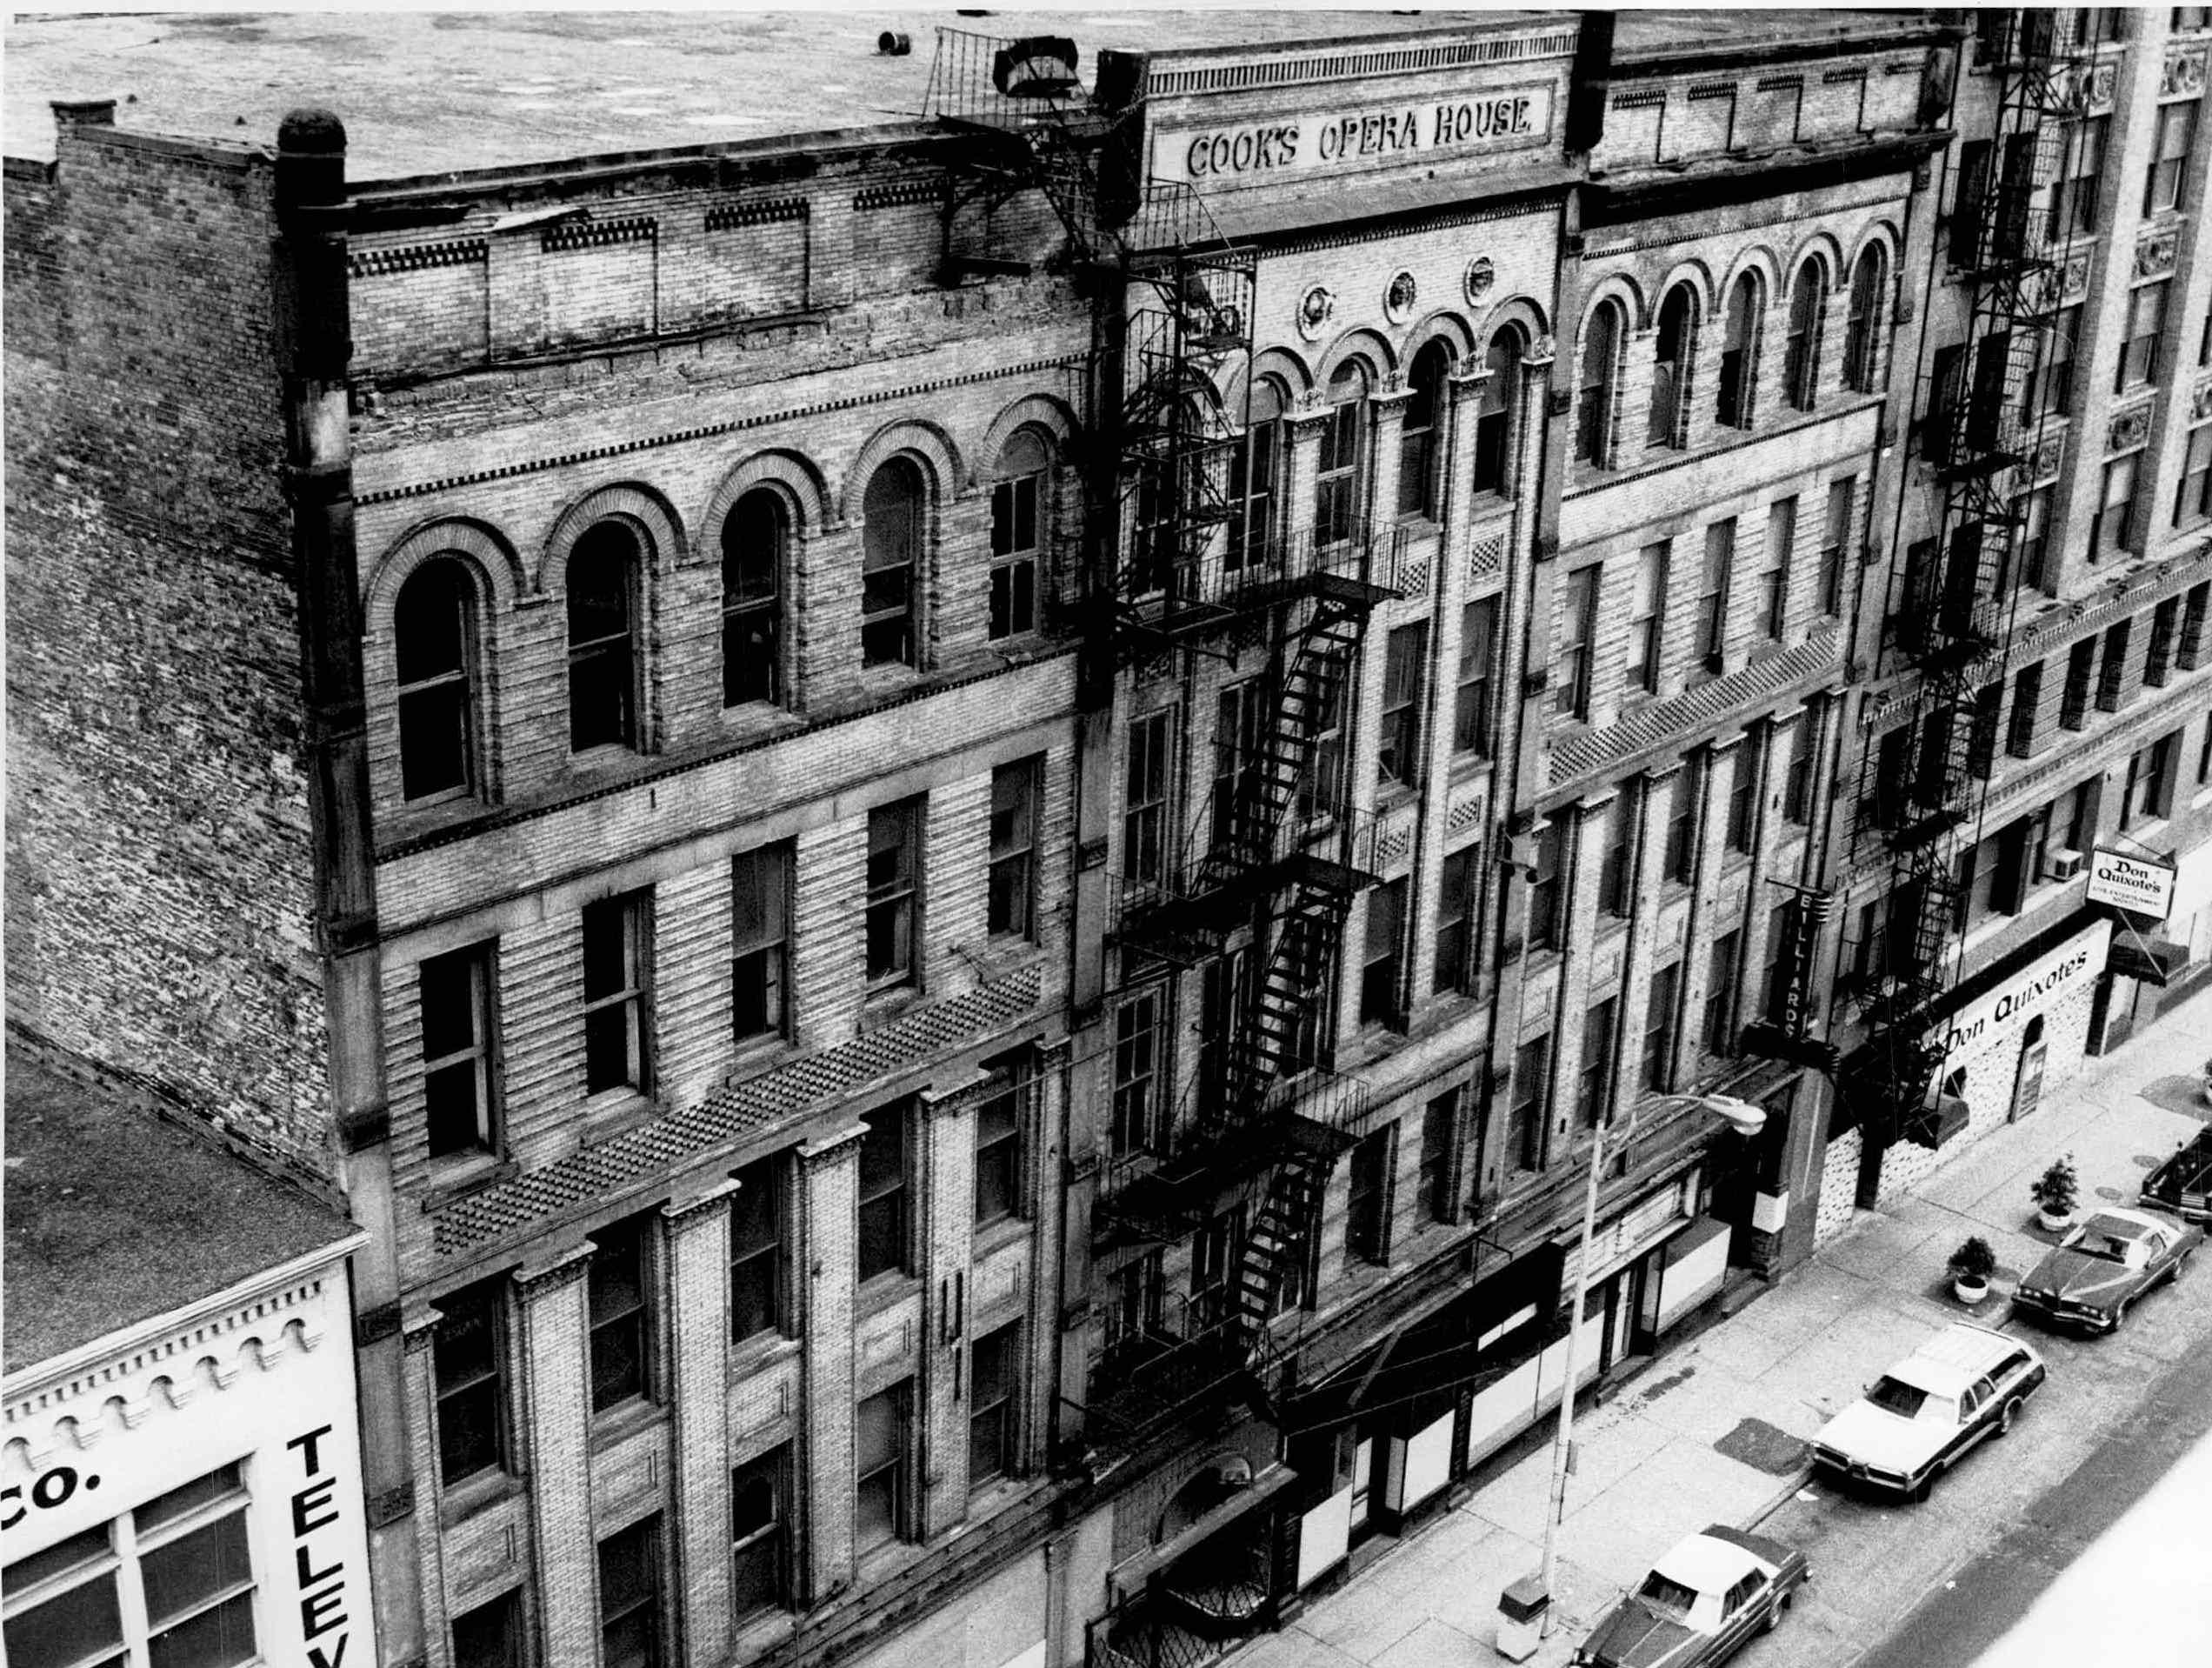 This 1977 photo shows Cook's Opera House and other buildings located on South Avenue before they were torn down for the Rochester Riverside Convention Center.